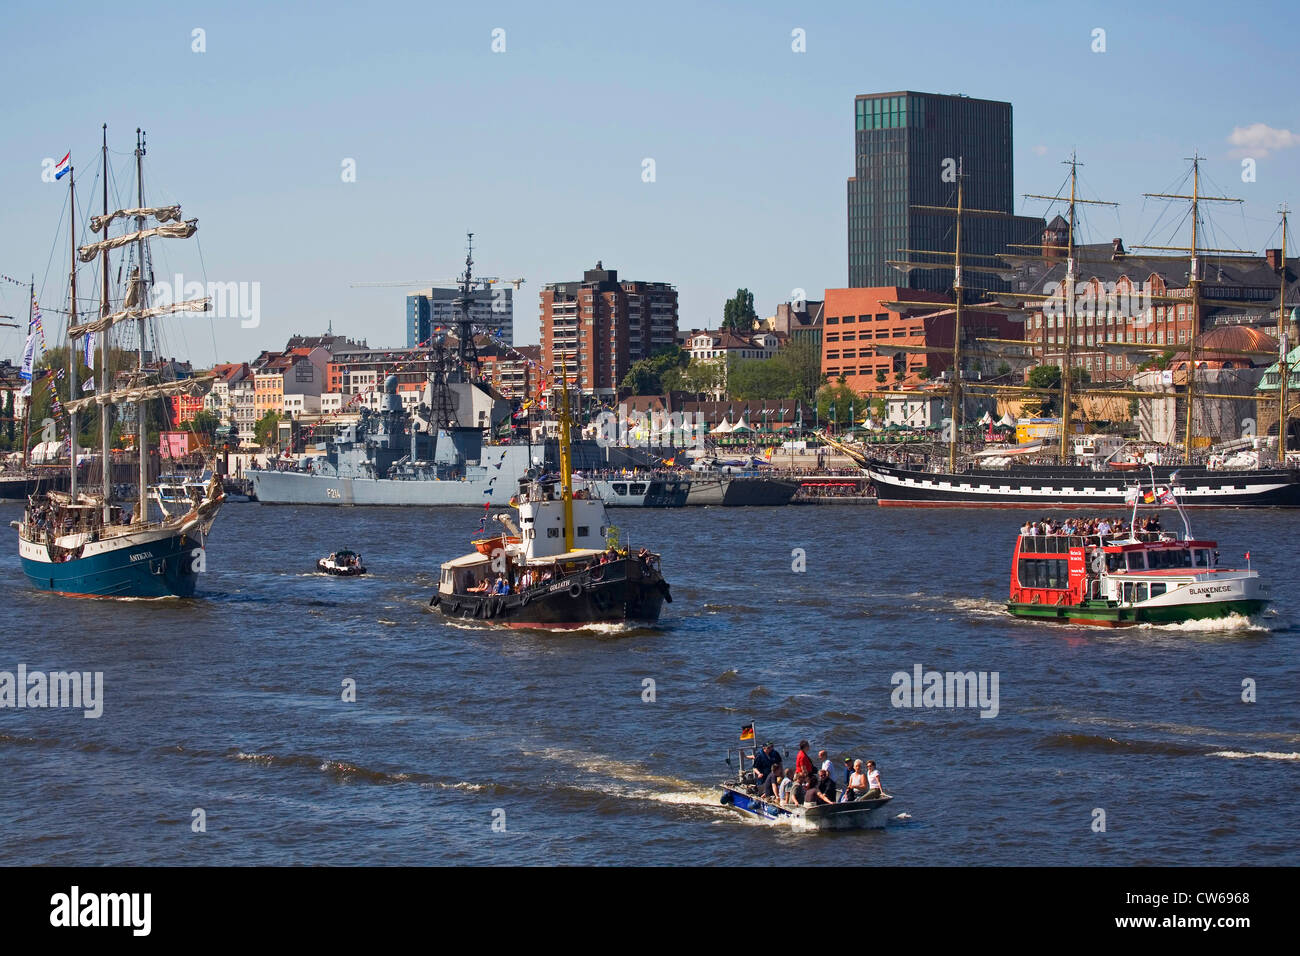 ships in the Port of Hamburg at the harbour birthday, Germany, Hamburg - Stock Image